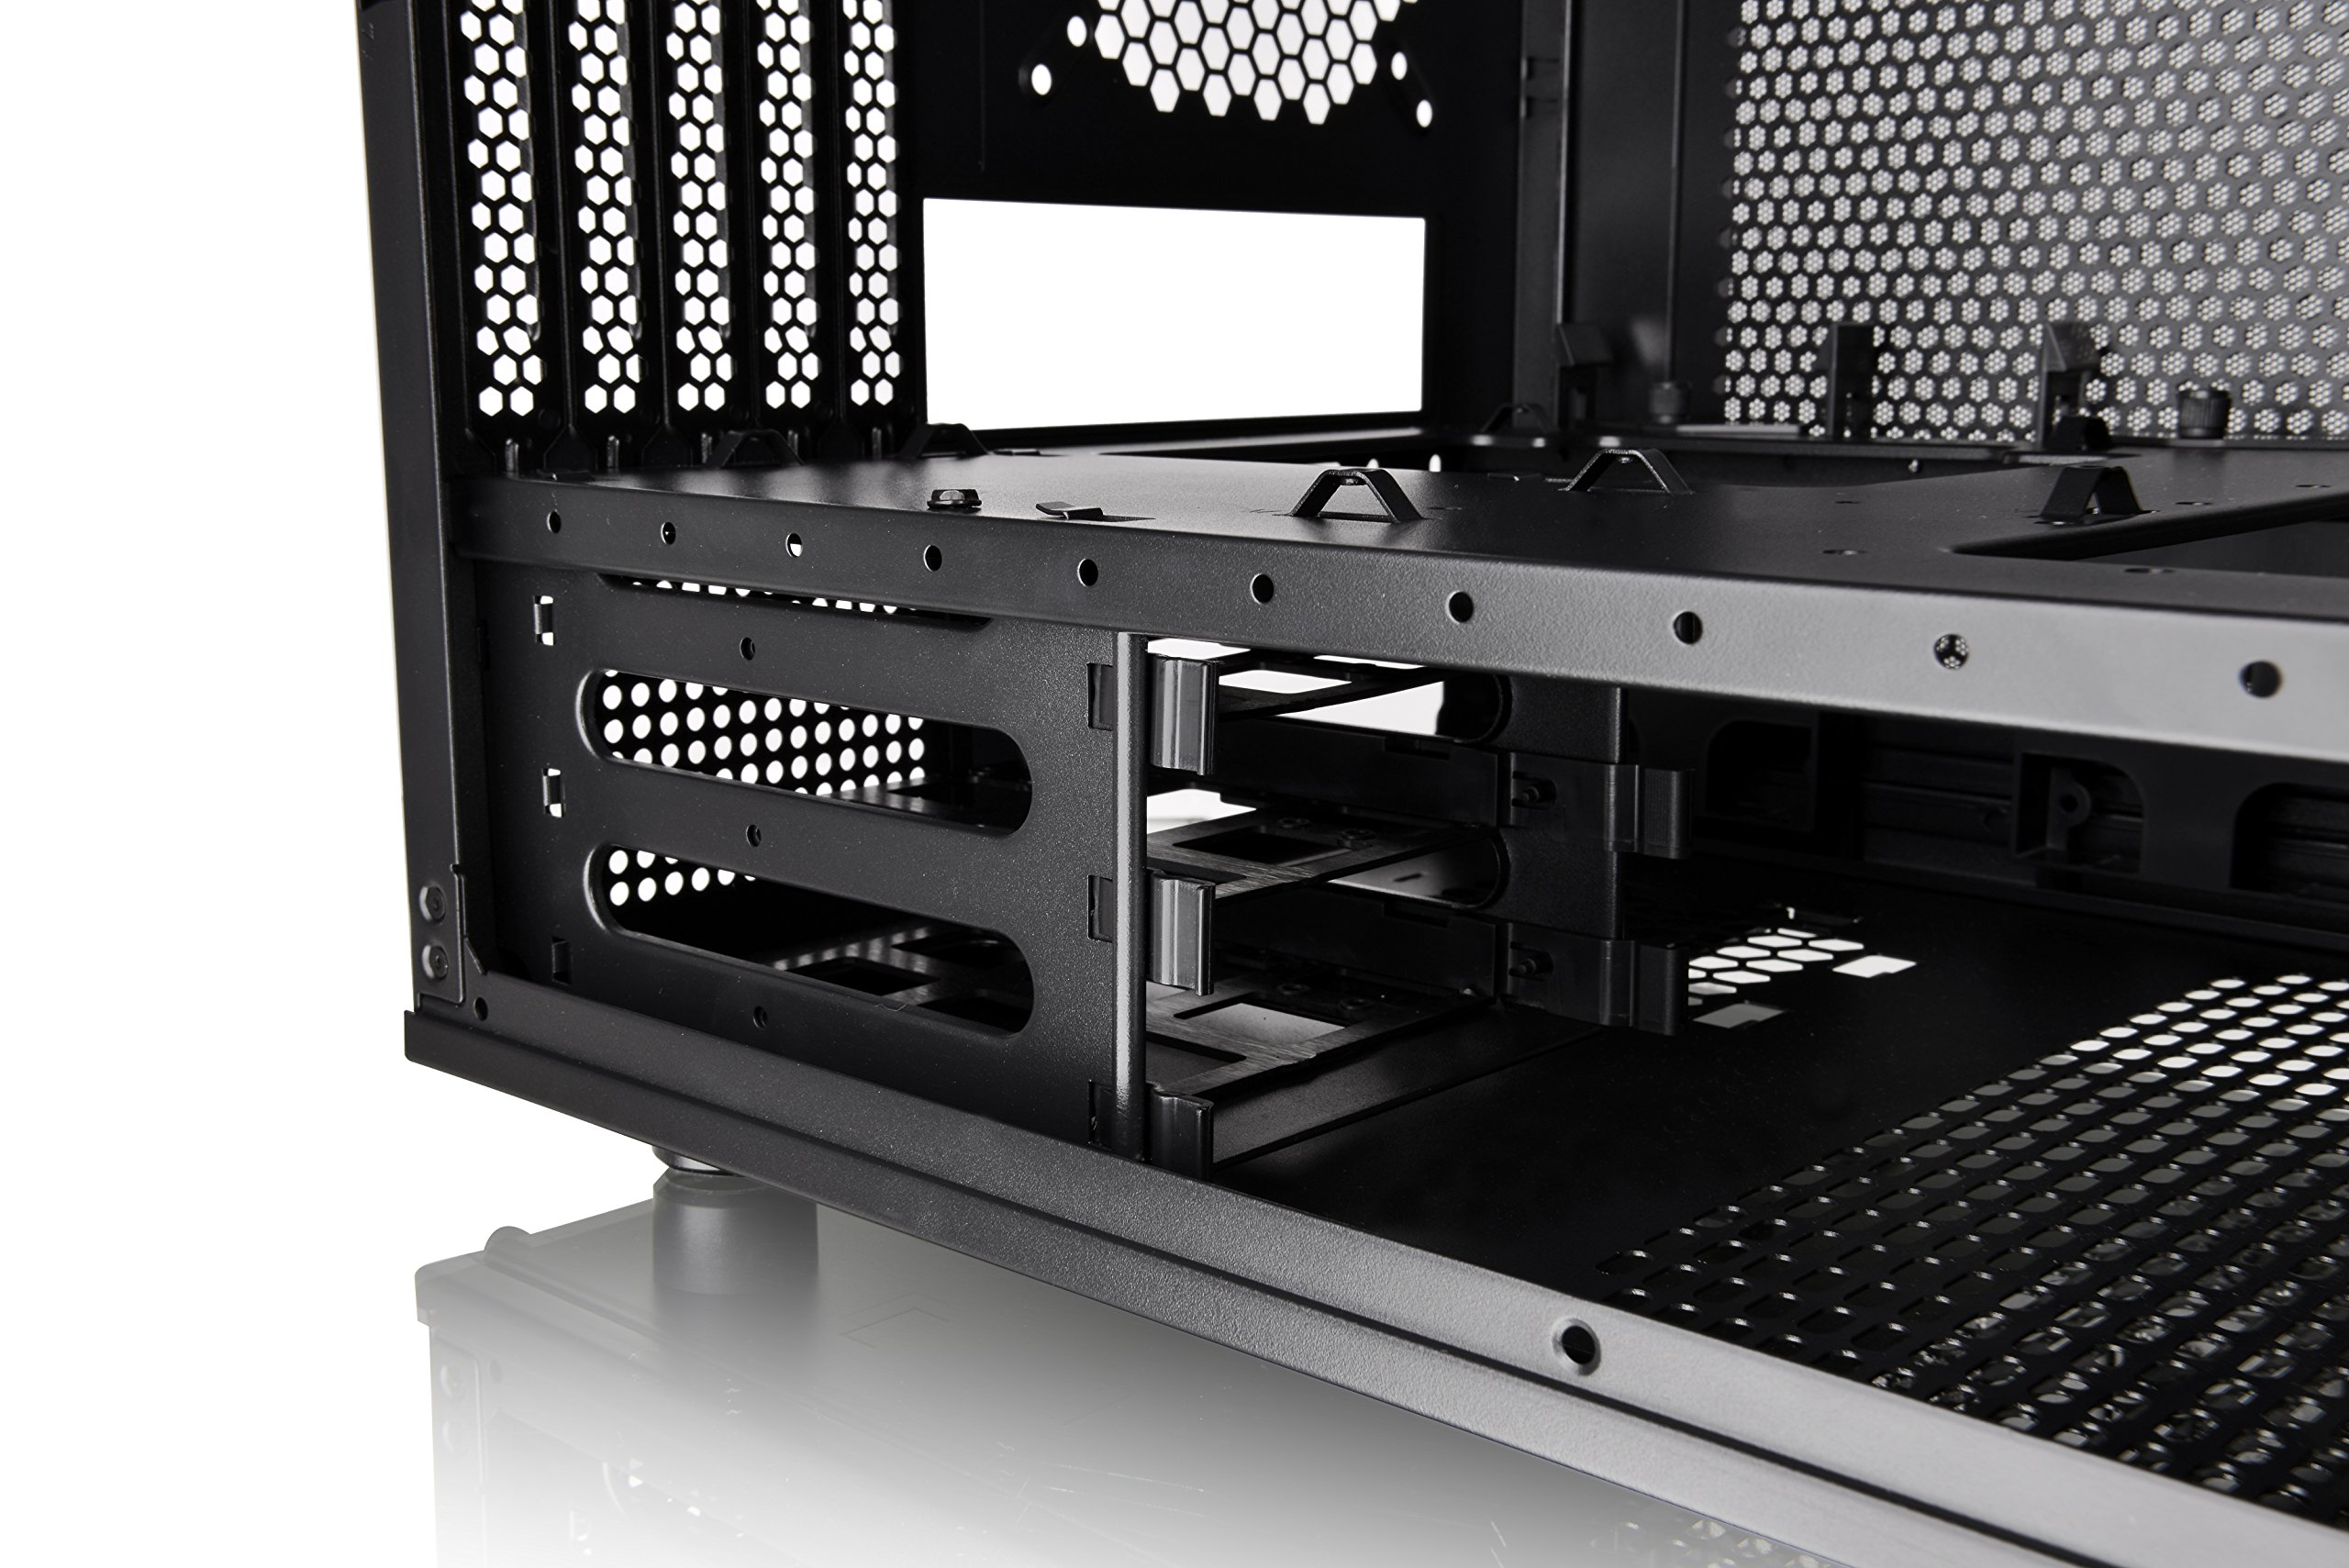 Thermaltake Core V21 SPCC Micro ATX, Mini ITX Cube Gaming Computer Case Chassis, Small Form Factor Builds, 200mm Front Fan Pre-installed, CA-1D5-00S1WN-00 by Thermaltake (Image #26)